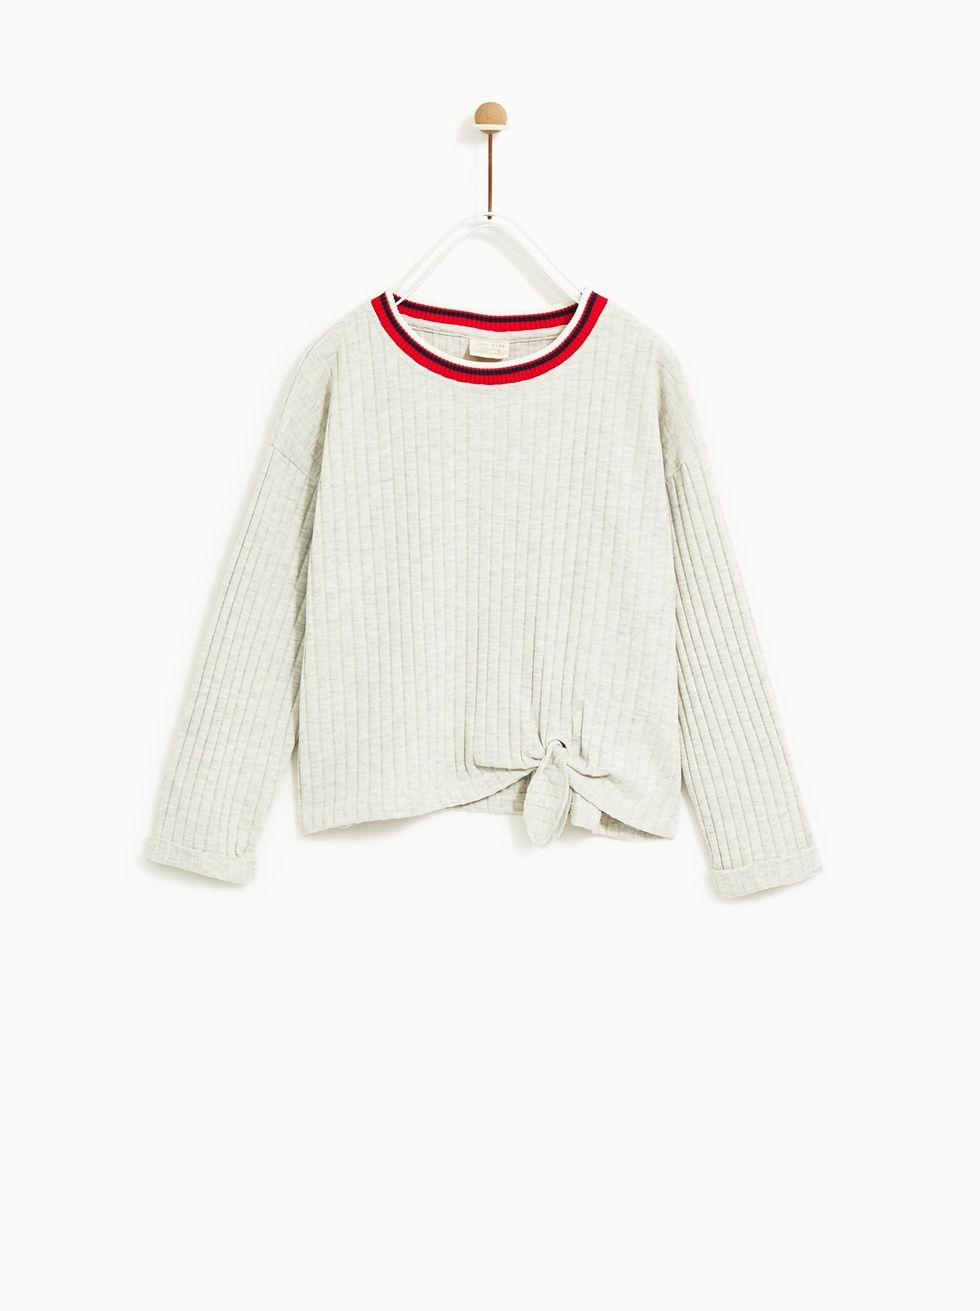 87e143033ba6d 14 kids items we want to buy from Zara right now 🛍 - Motherly